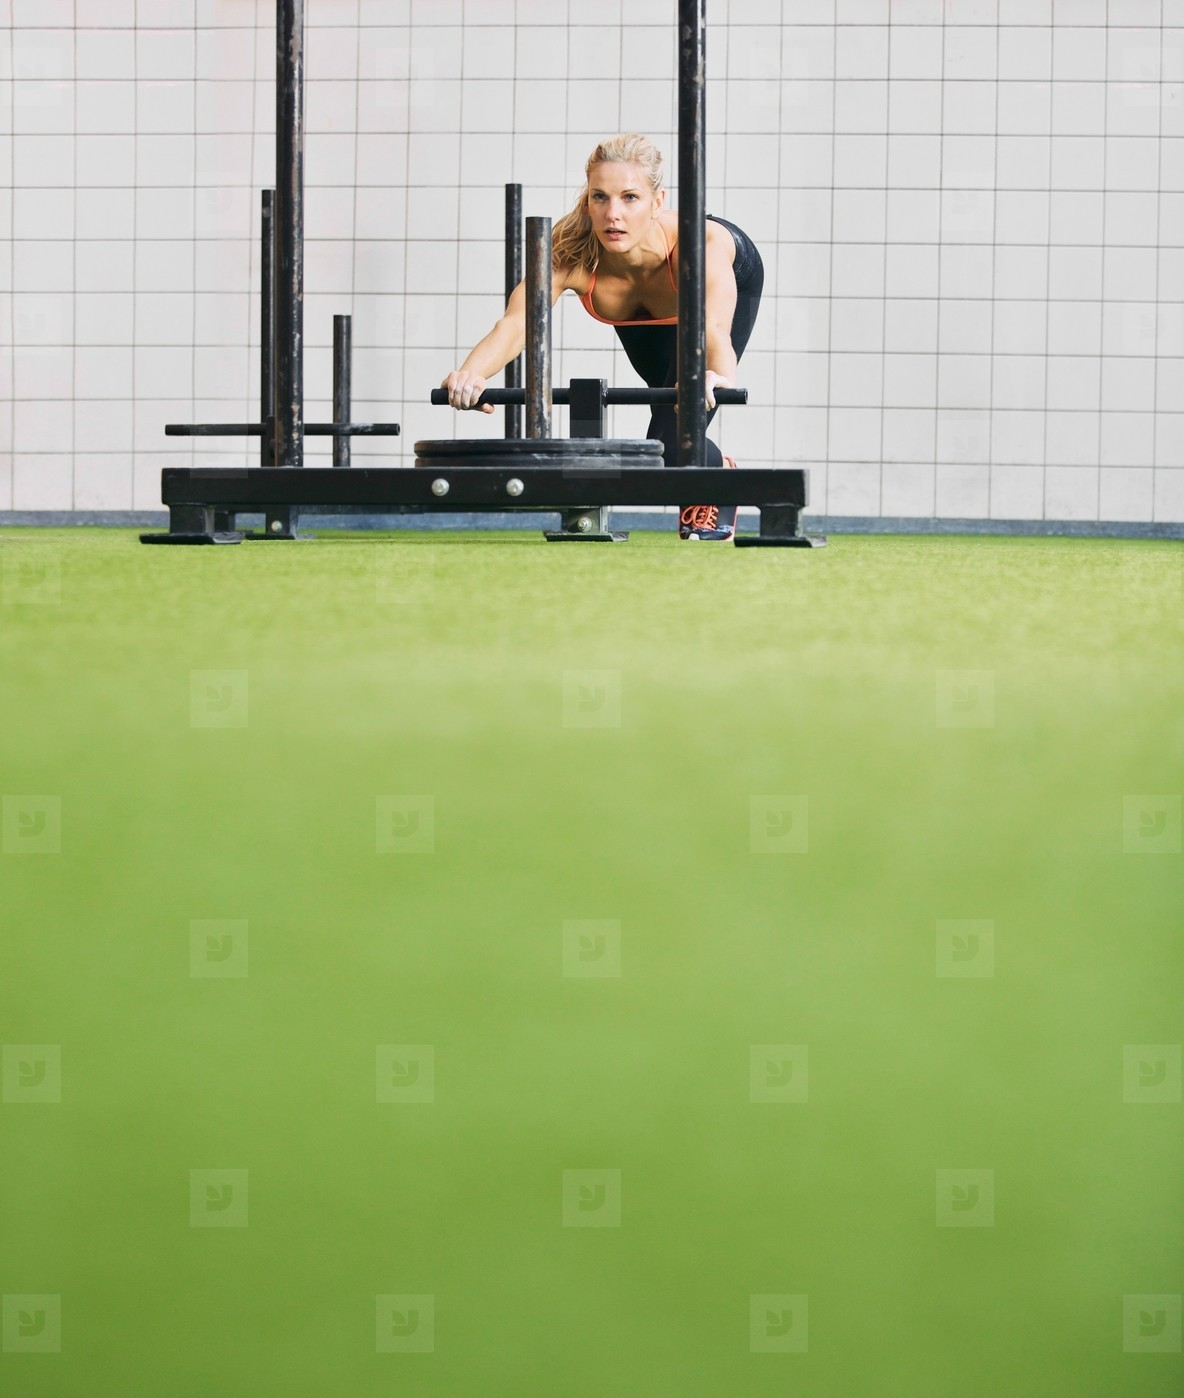 Fit young female using prowler exercise equipment at gym